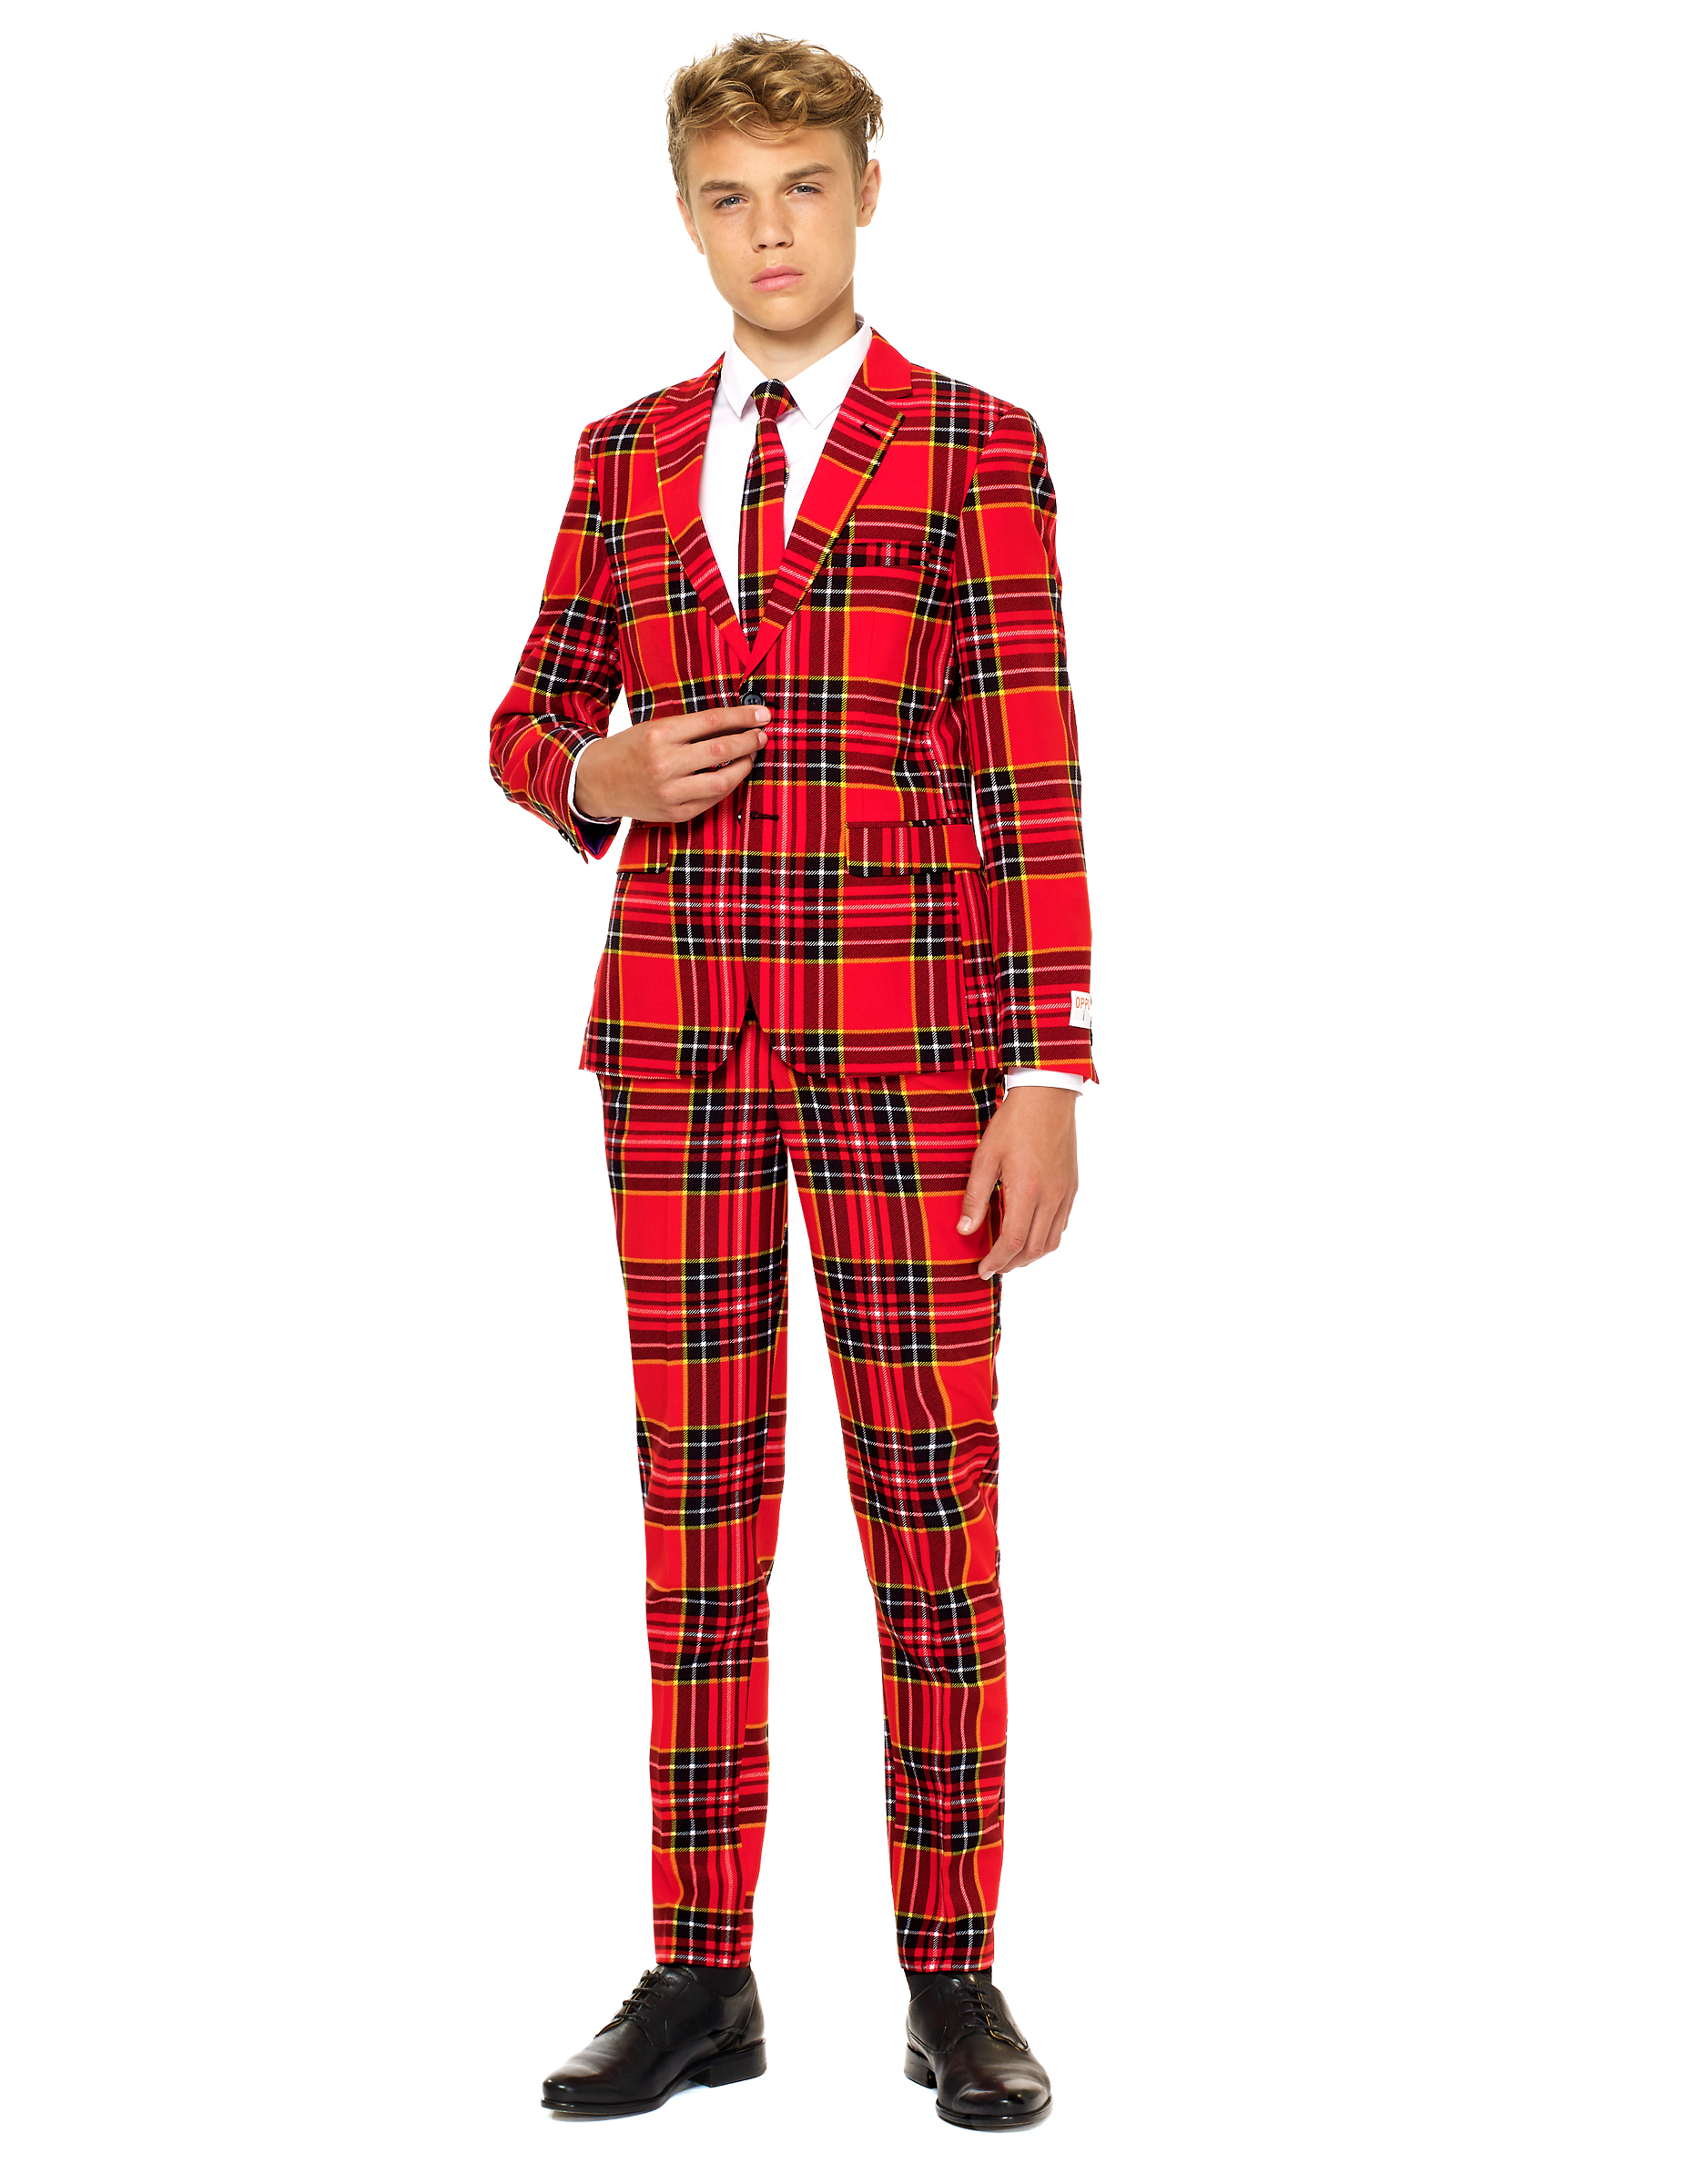 Teenager Kostüme Opposuits Kostüm Für Teenager Rot Günstige Faschings